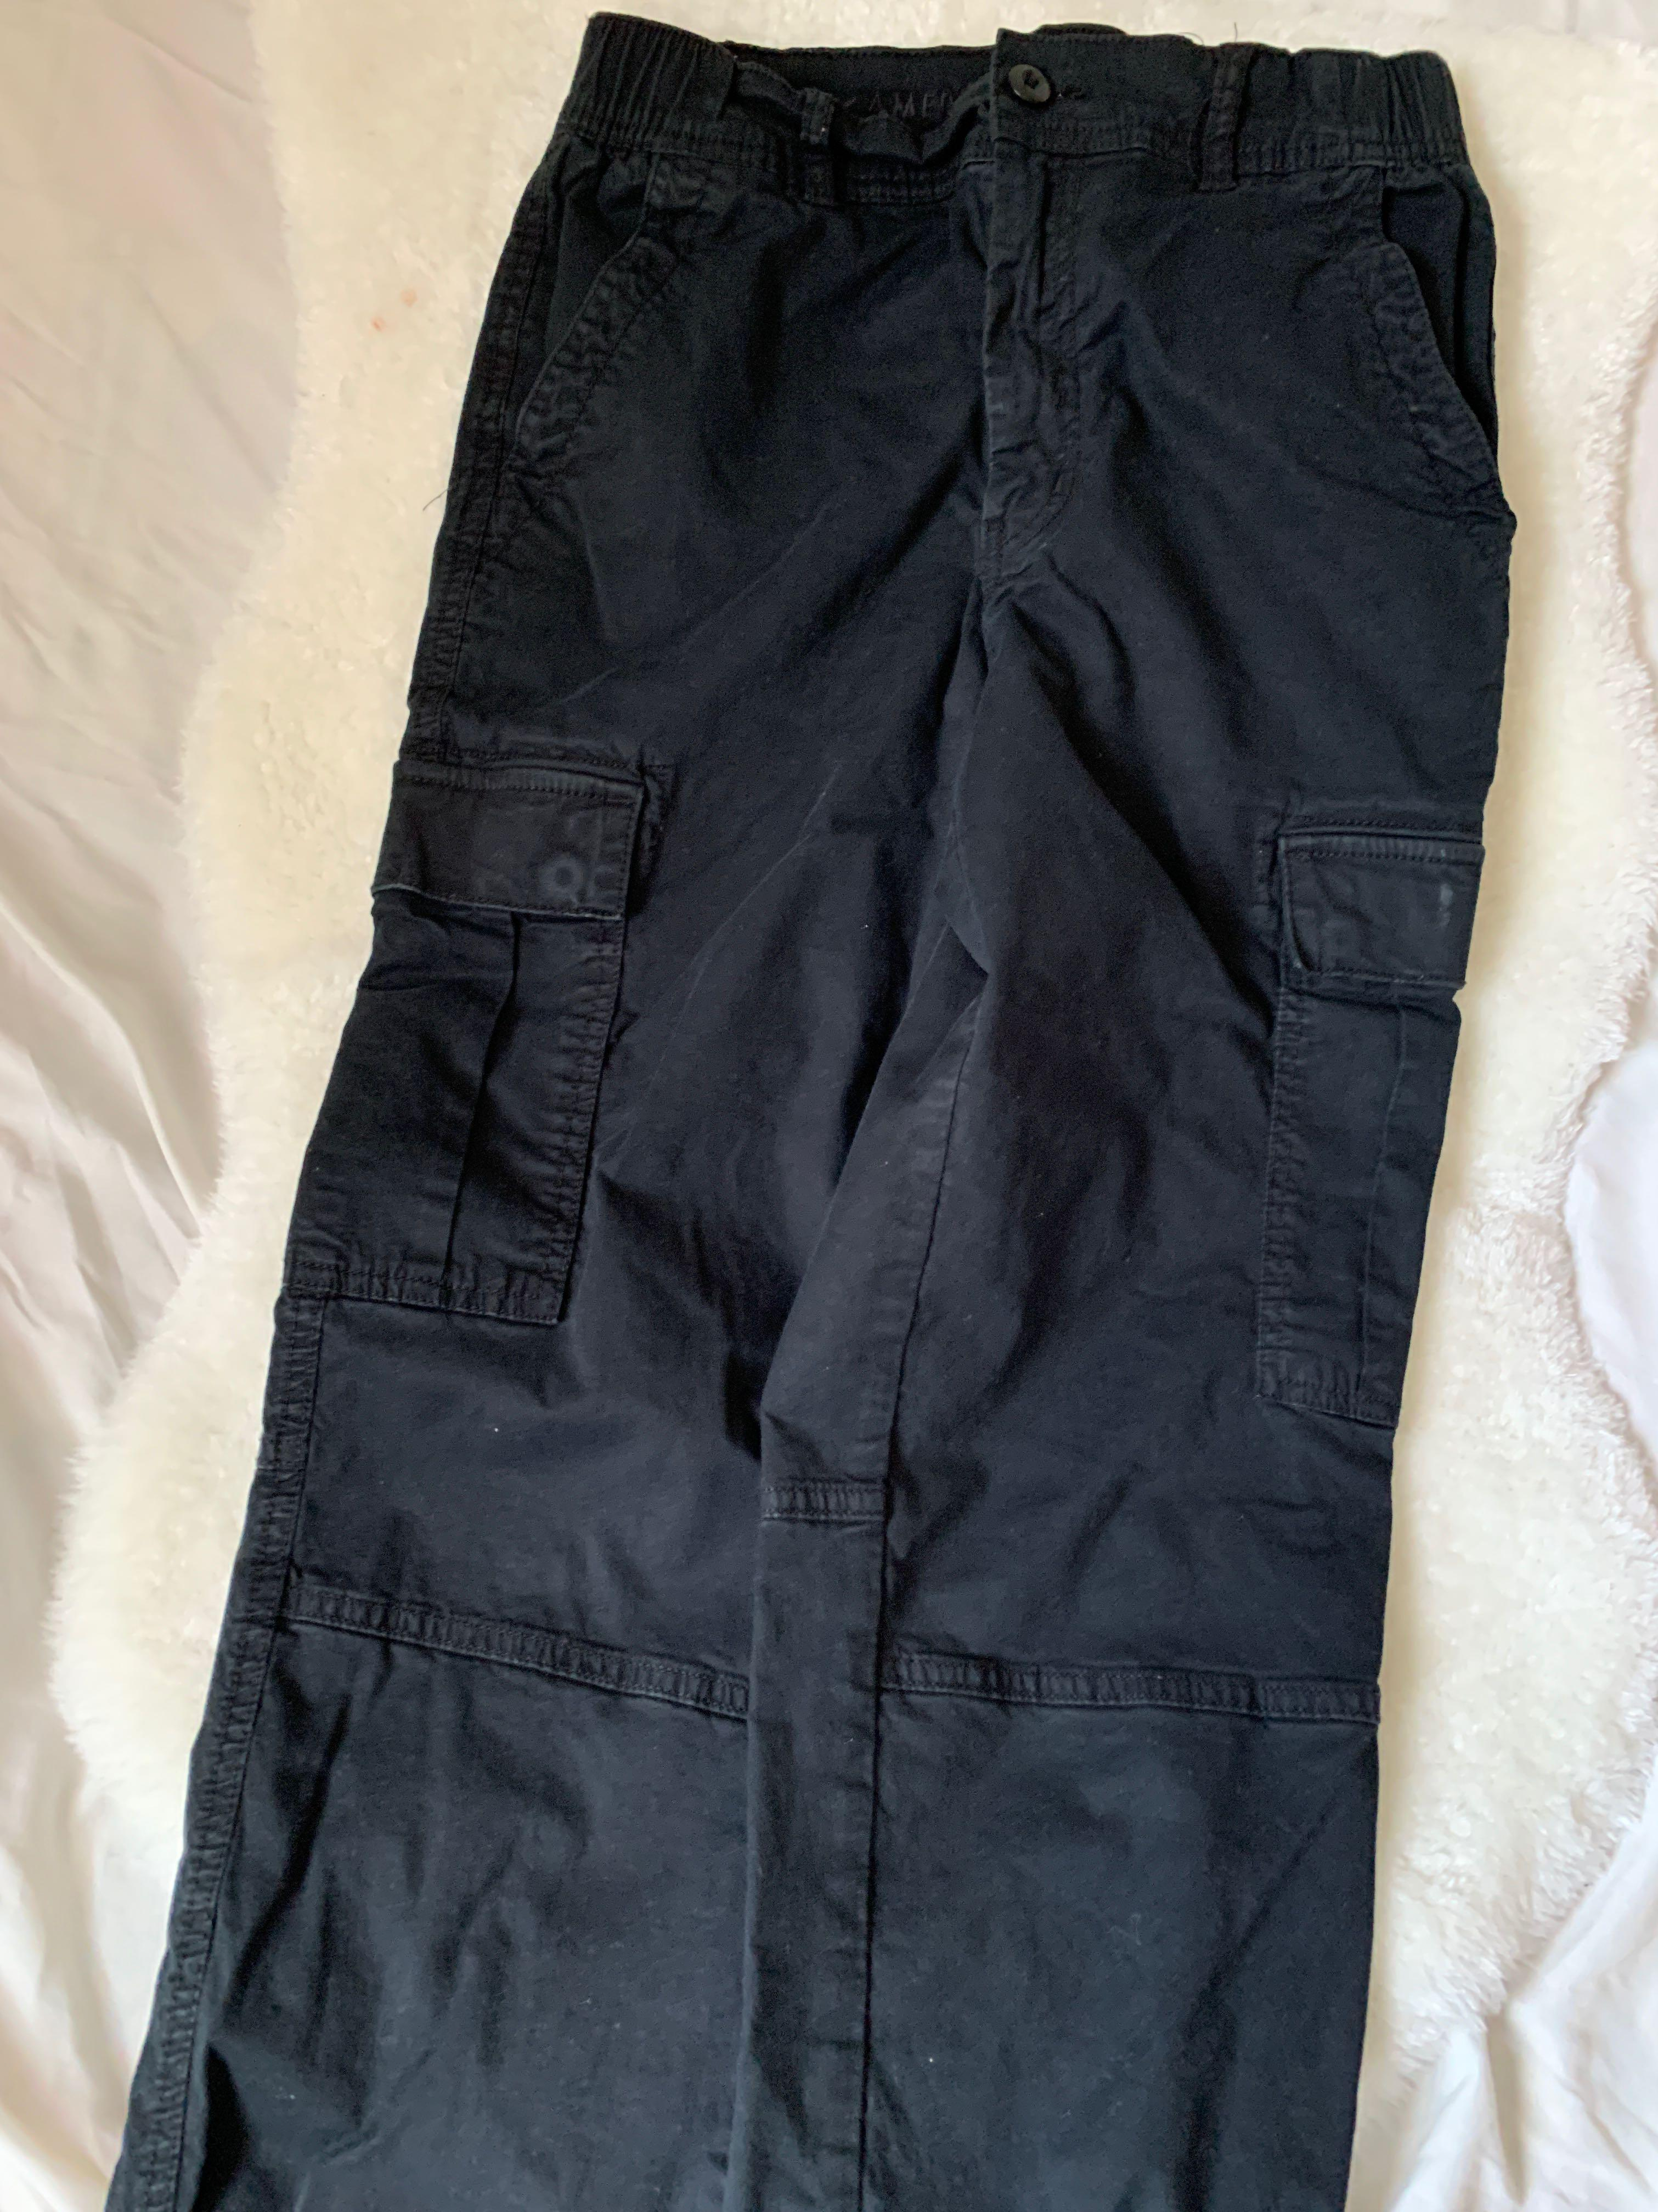 american eagle black joggers size 4, fits a 6 as well stretchy